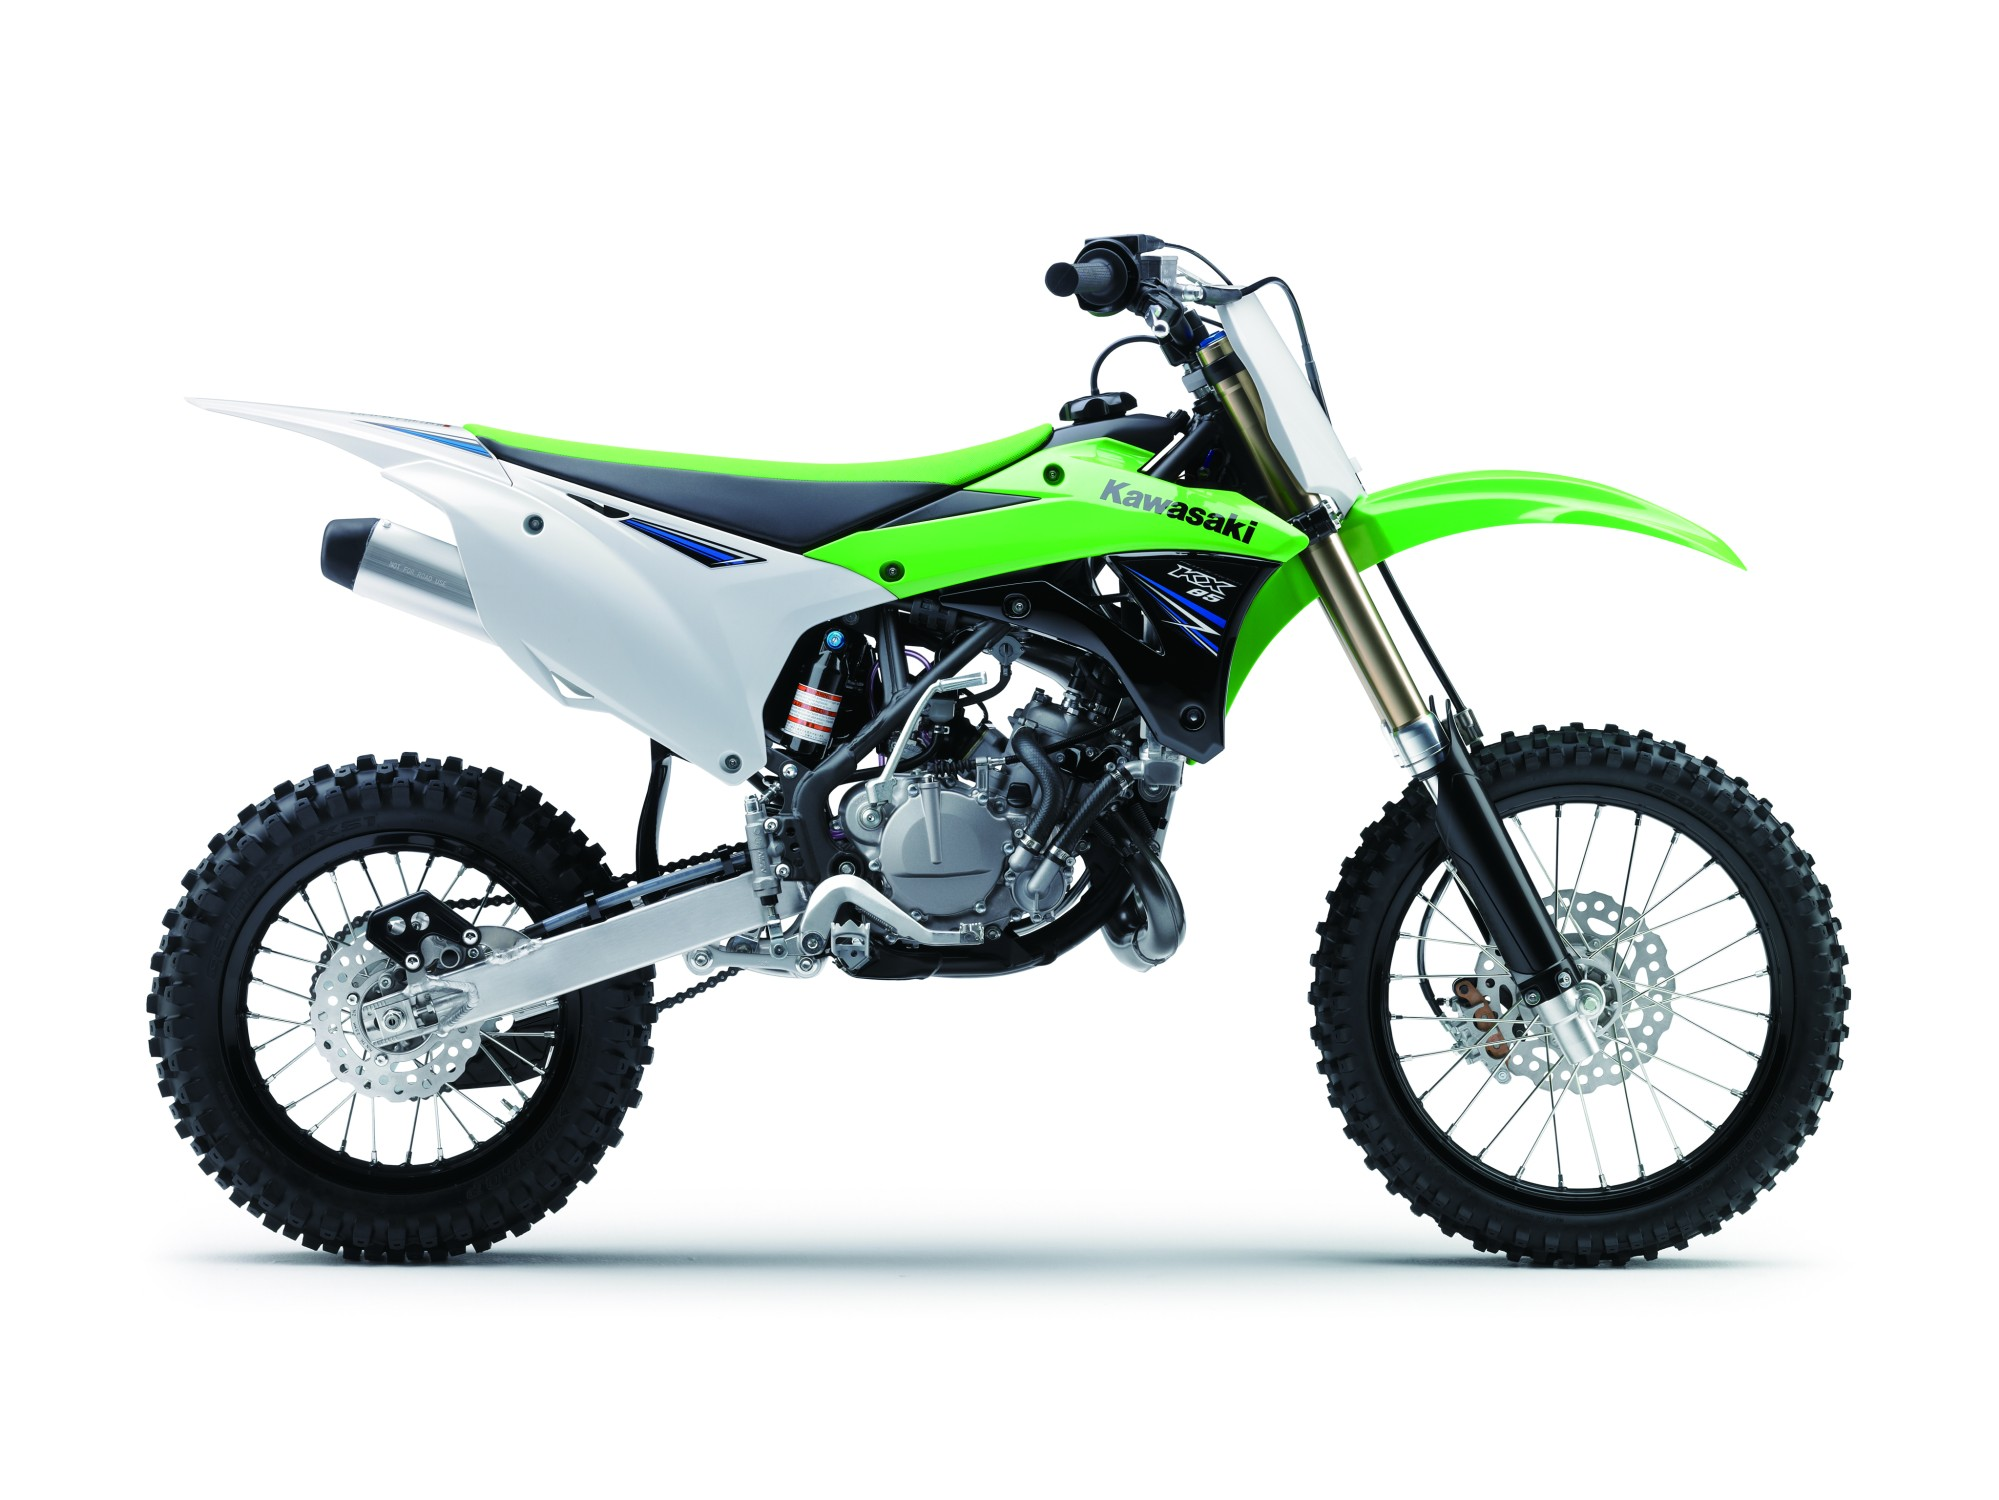 Kawasaki kx 85 2015 motocross pictures to pin on pinterest